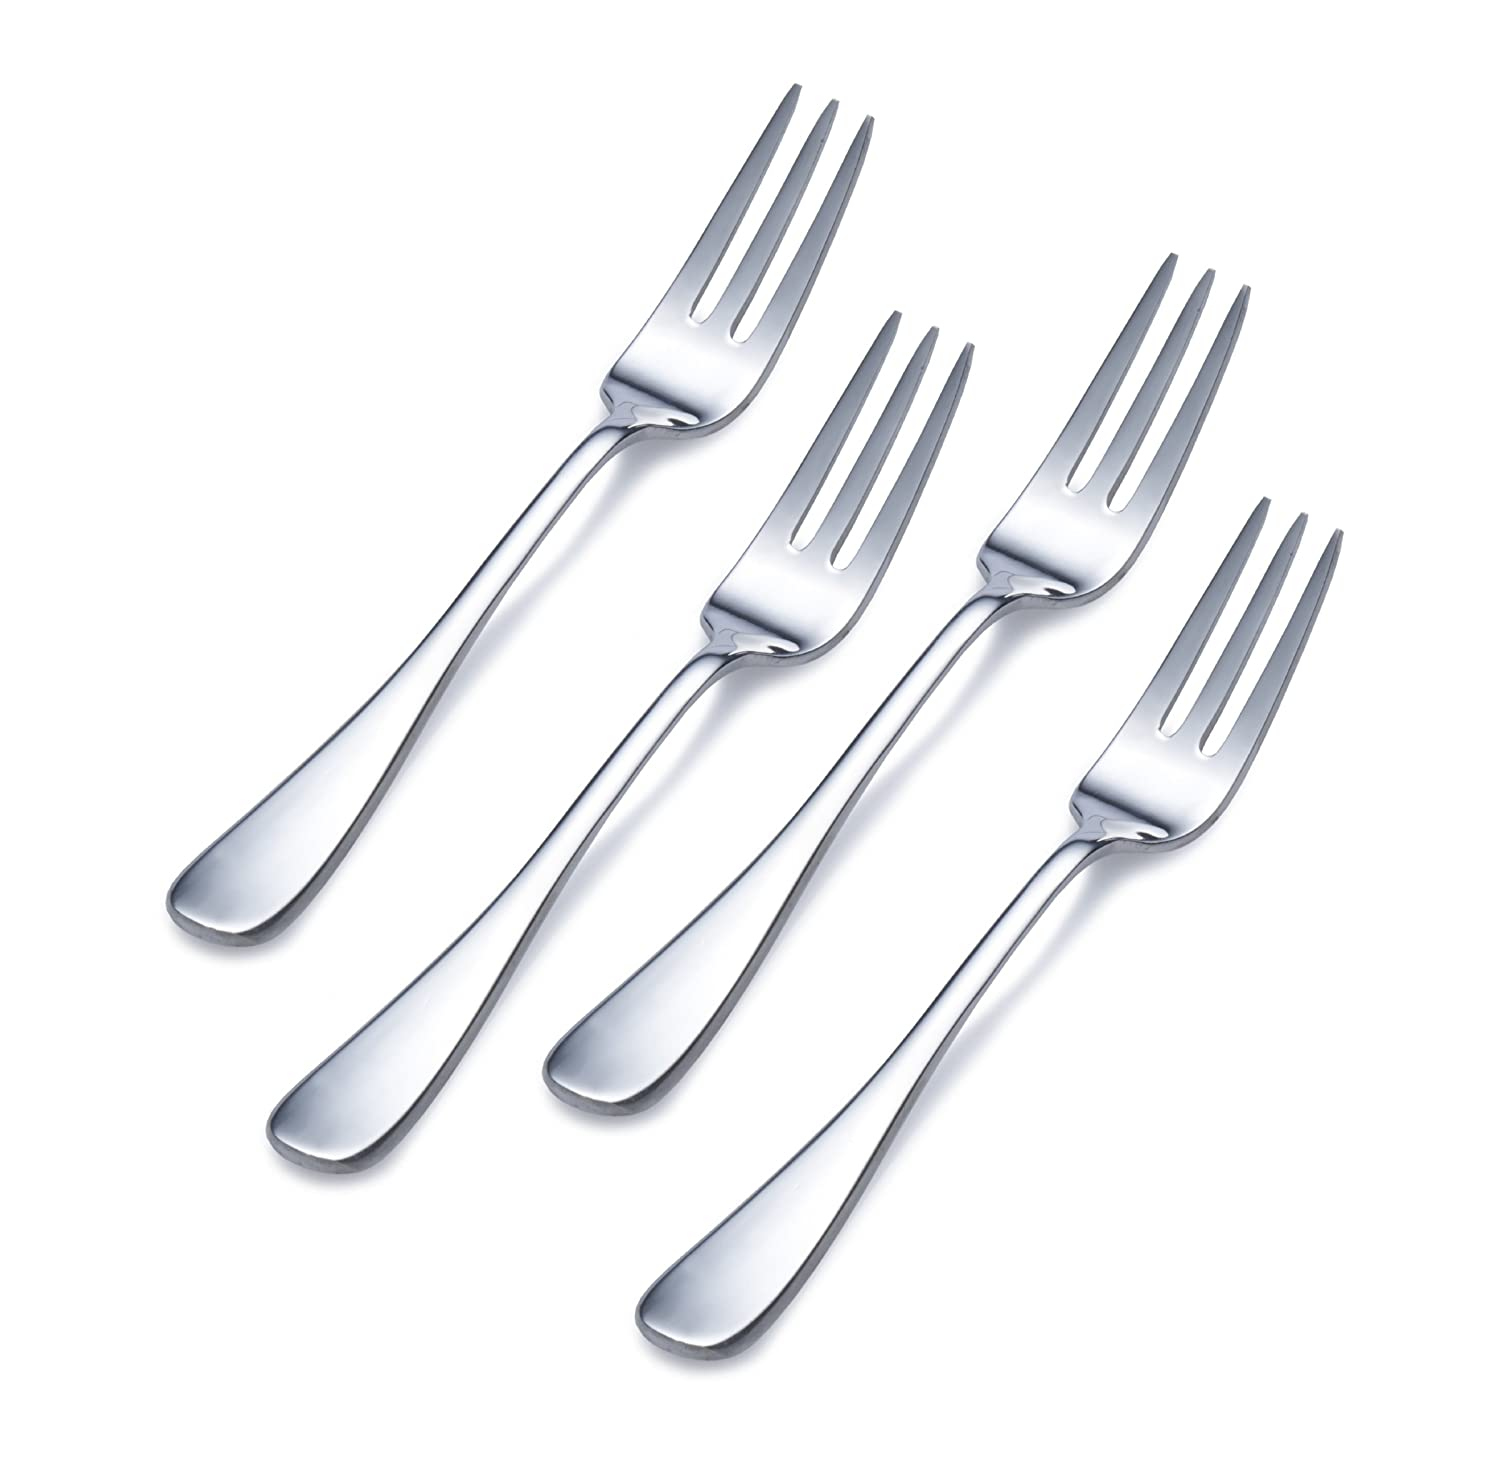 Towle Living 5139861 Basic Stainless Steel Cocktail Fork, Set of 4